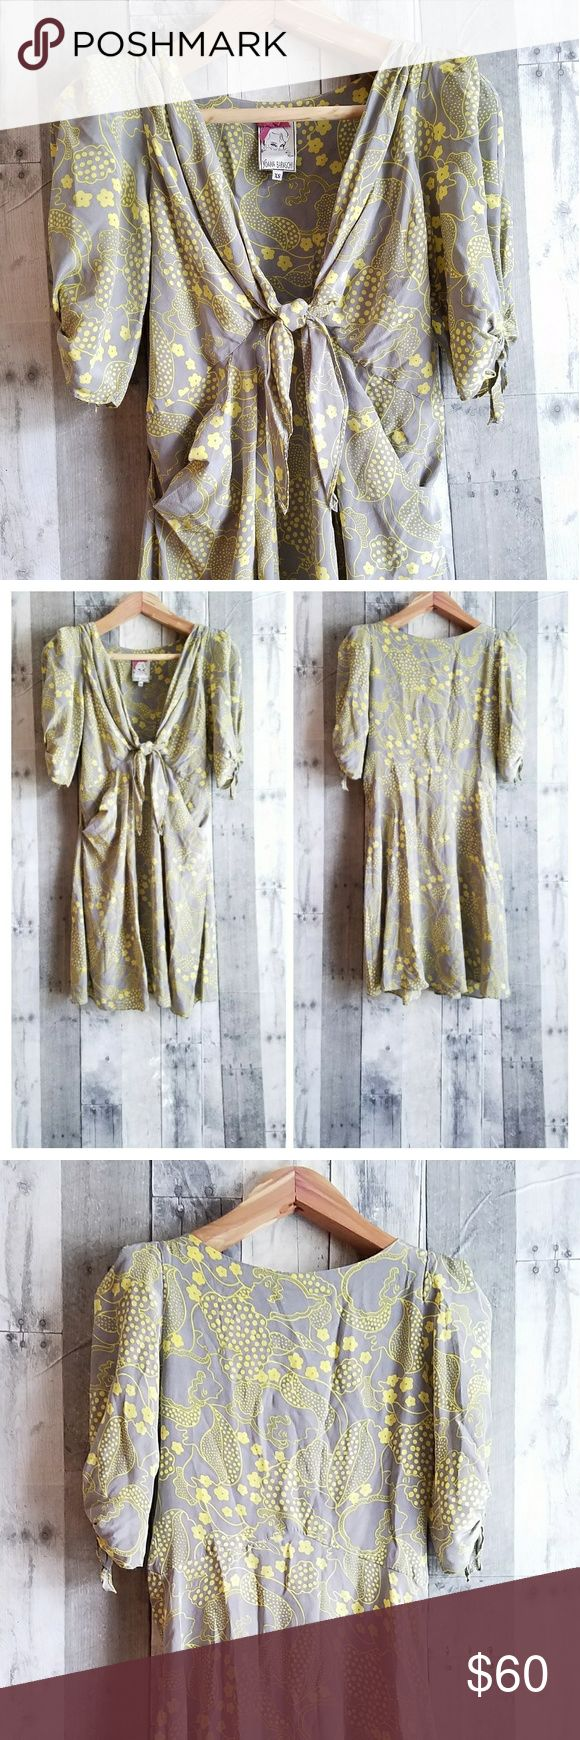 "🍍EUC ANTHROPOLOGIE YOANA BARASCHI silk dress EUC ANTHROPOLOGIE YOANA BARASCHI 100% silk grey and yellow dress. This is a stunner! Such a classic and elegant look. The measurements are as follows- Armpit to armpit-  Shoulder to shoulder- 17"" Bust- 30"" Waist- 29"" Hips- 50"" Length- 38"" Yoana Baraschi Dresses"